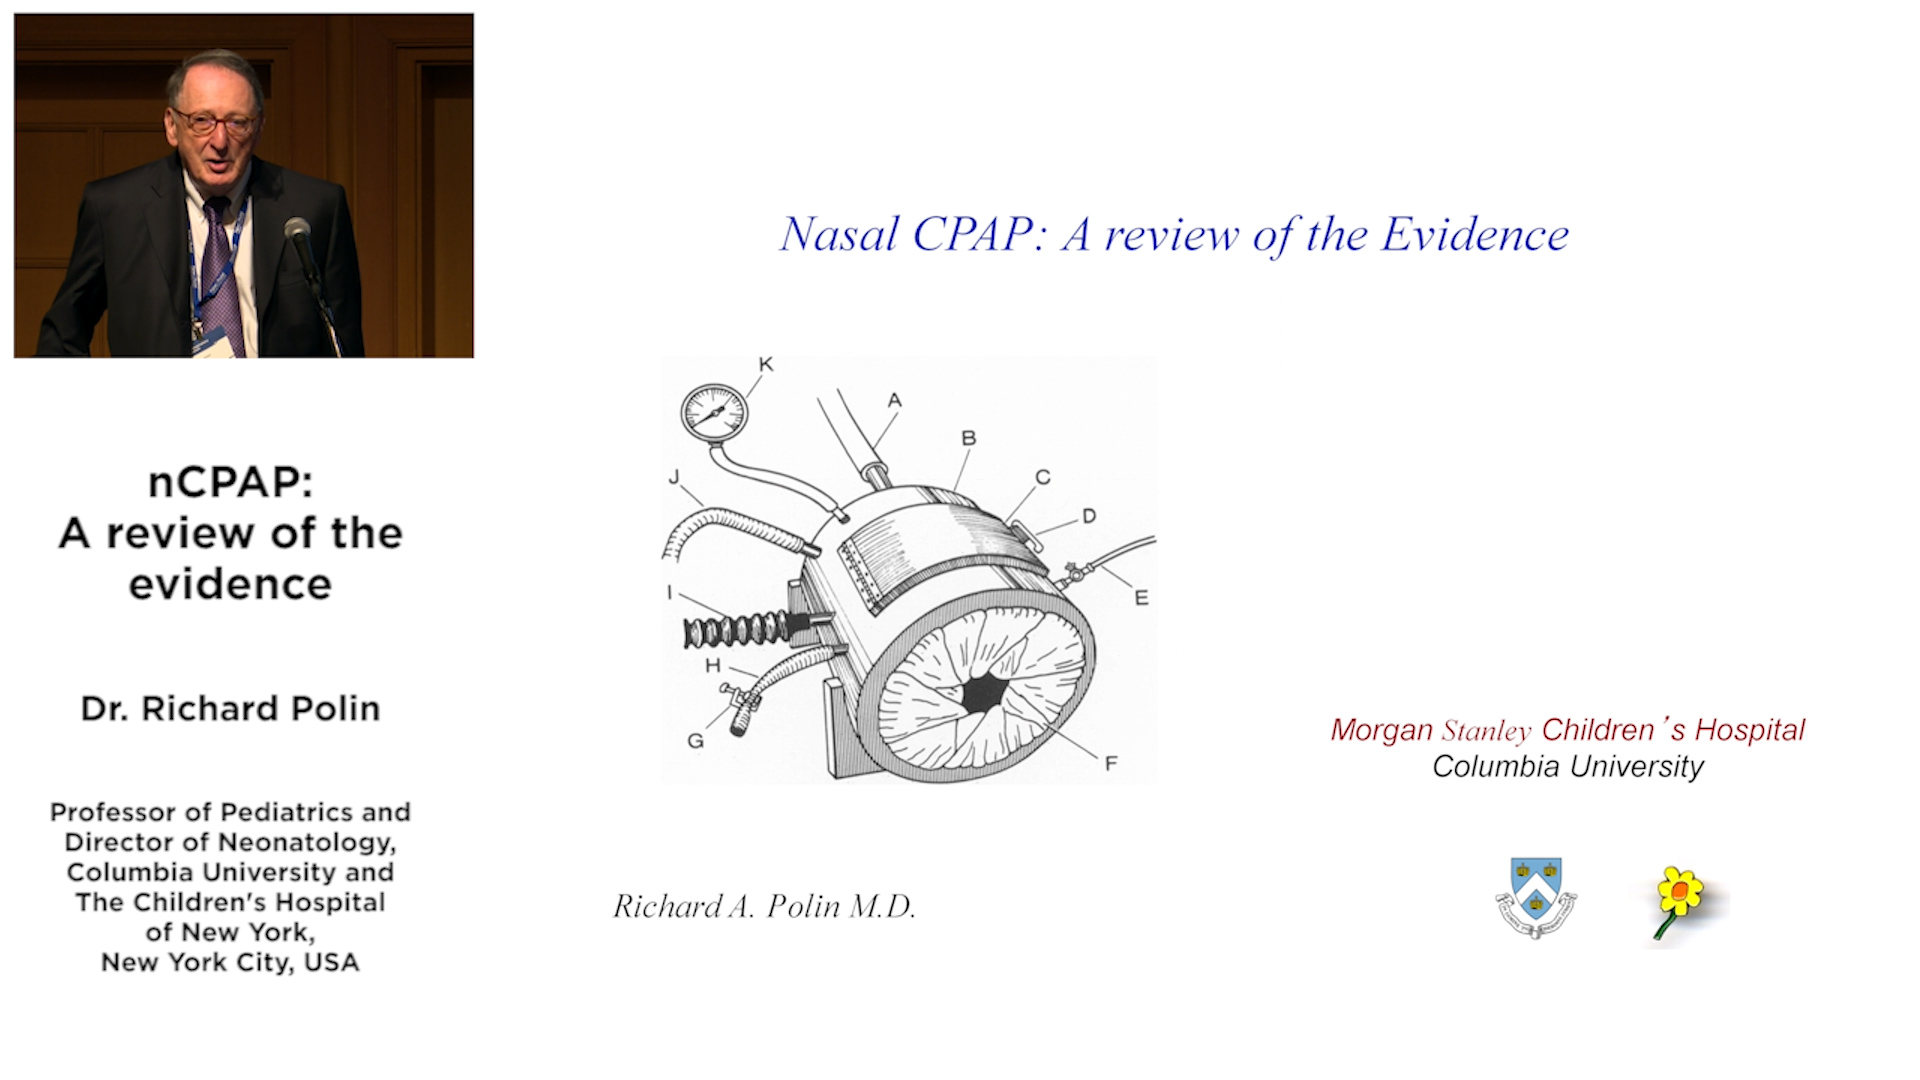 nCPAP: A review of the evidence - Dr. Richard Polin